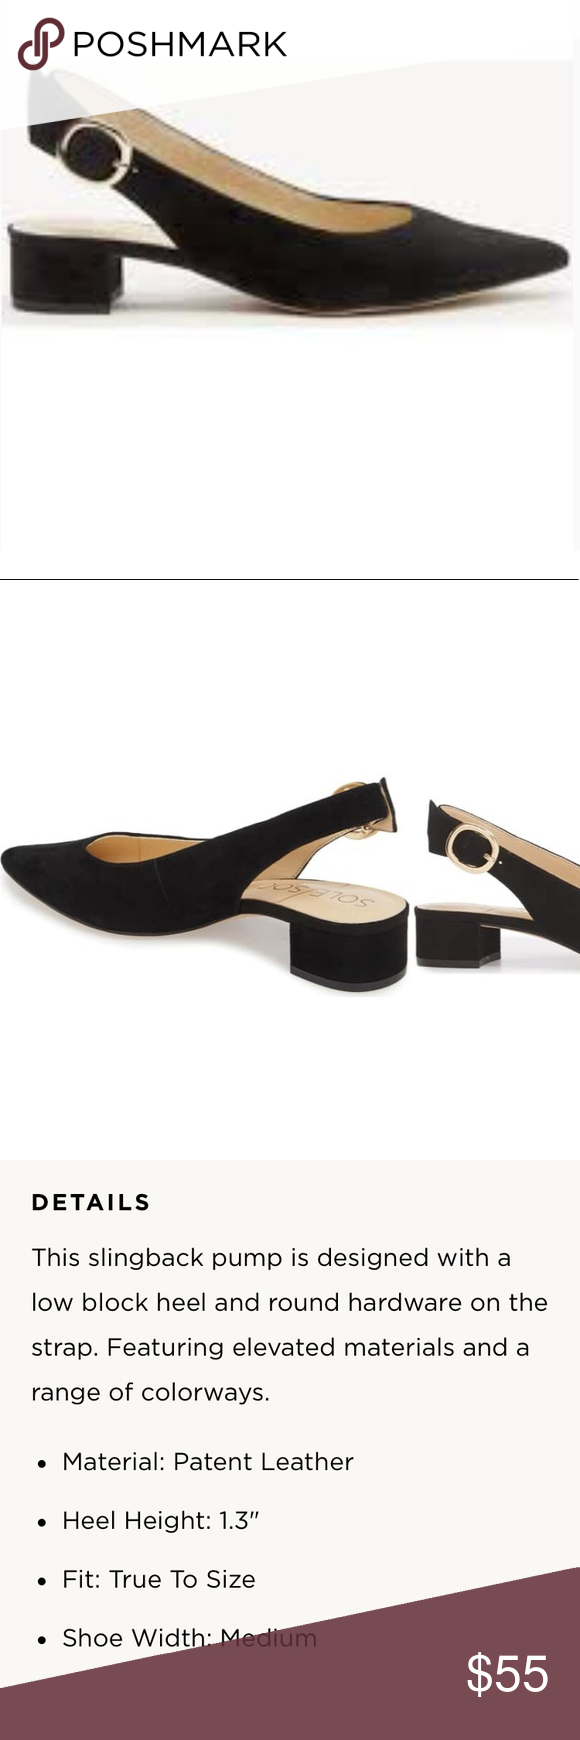 0c7bdbe80fc Sole Society Mariol sued flat EUC Beautiful black suede slingback heel with  a gold tone button. The shoes have only been worn a handful of times and  show no ...